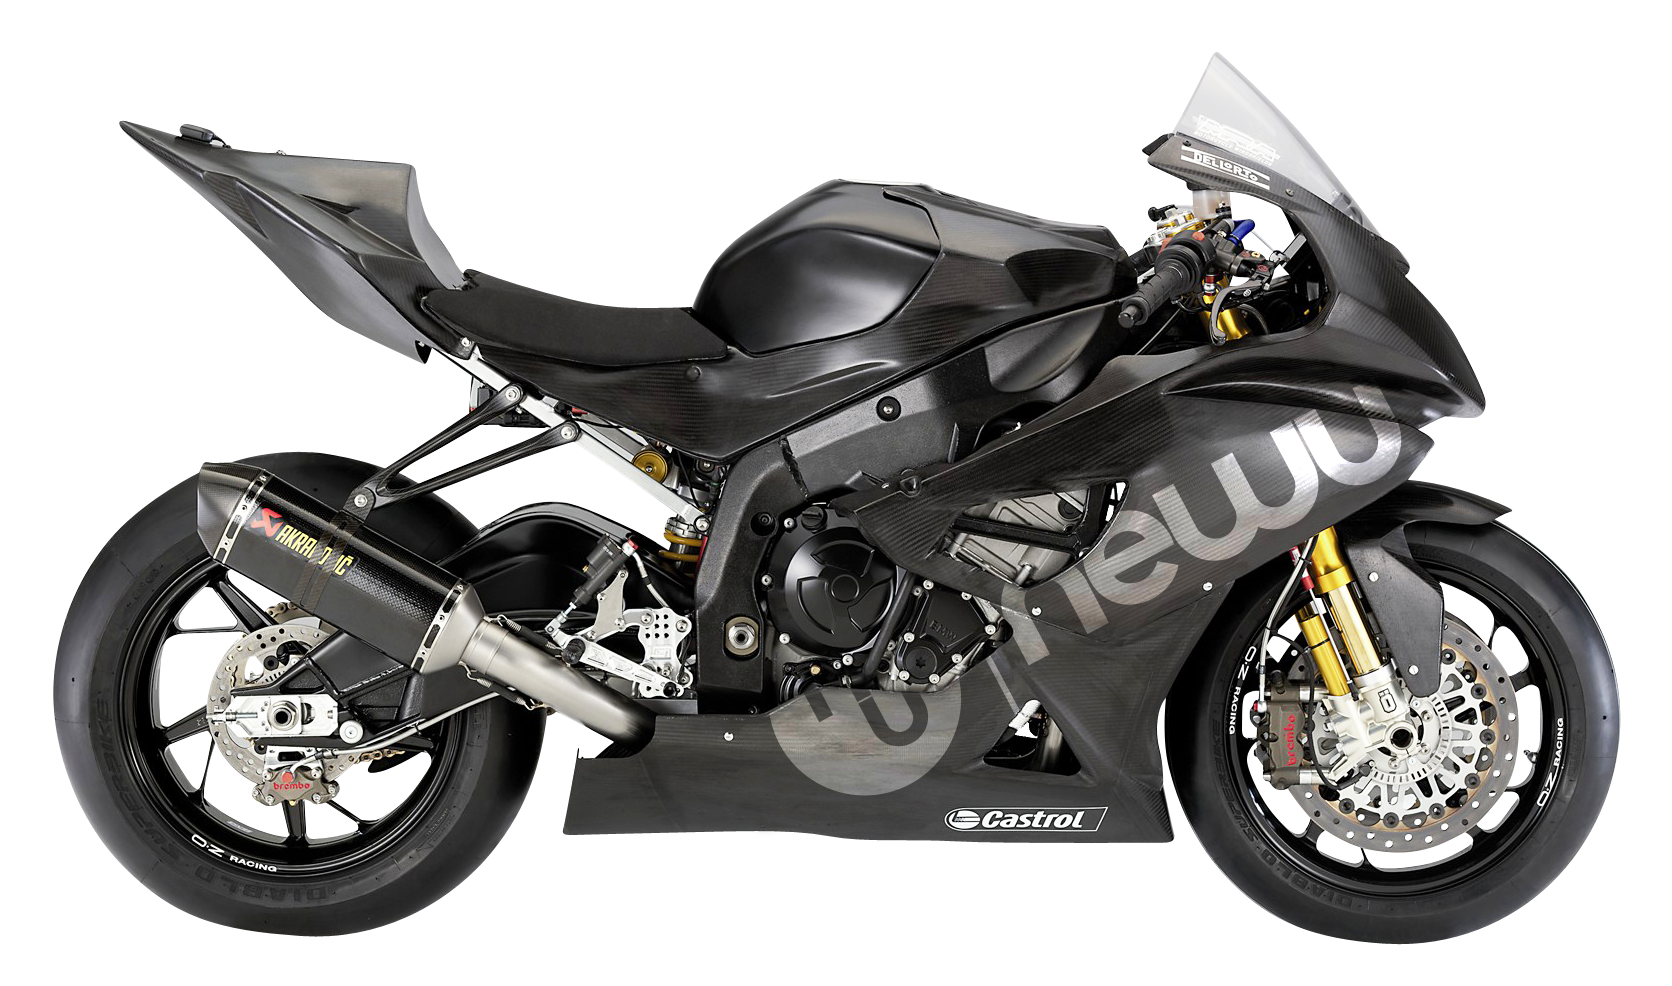 Newu BMW S1000RR Super Bike PNG Image